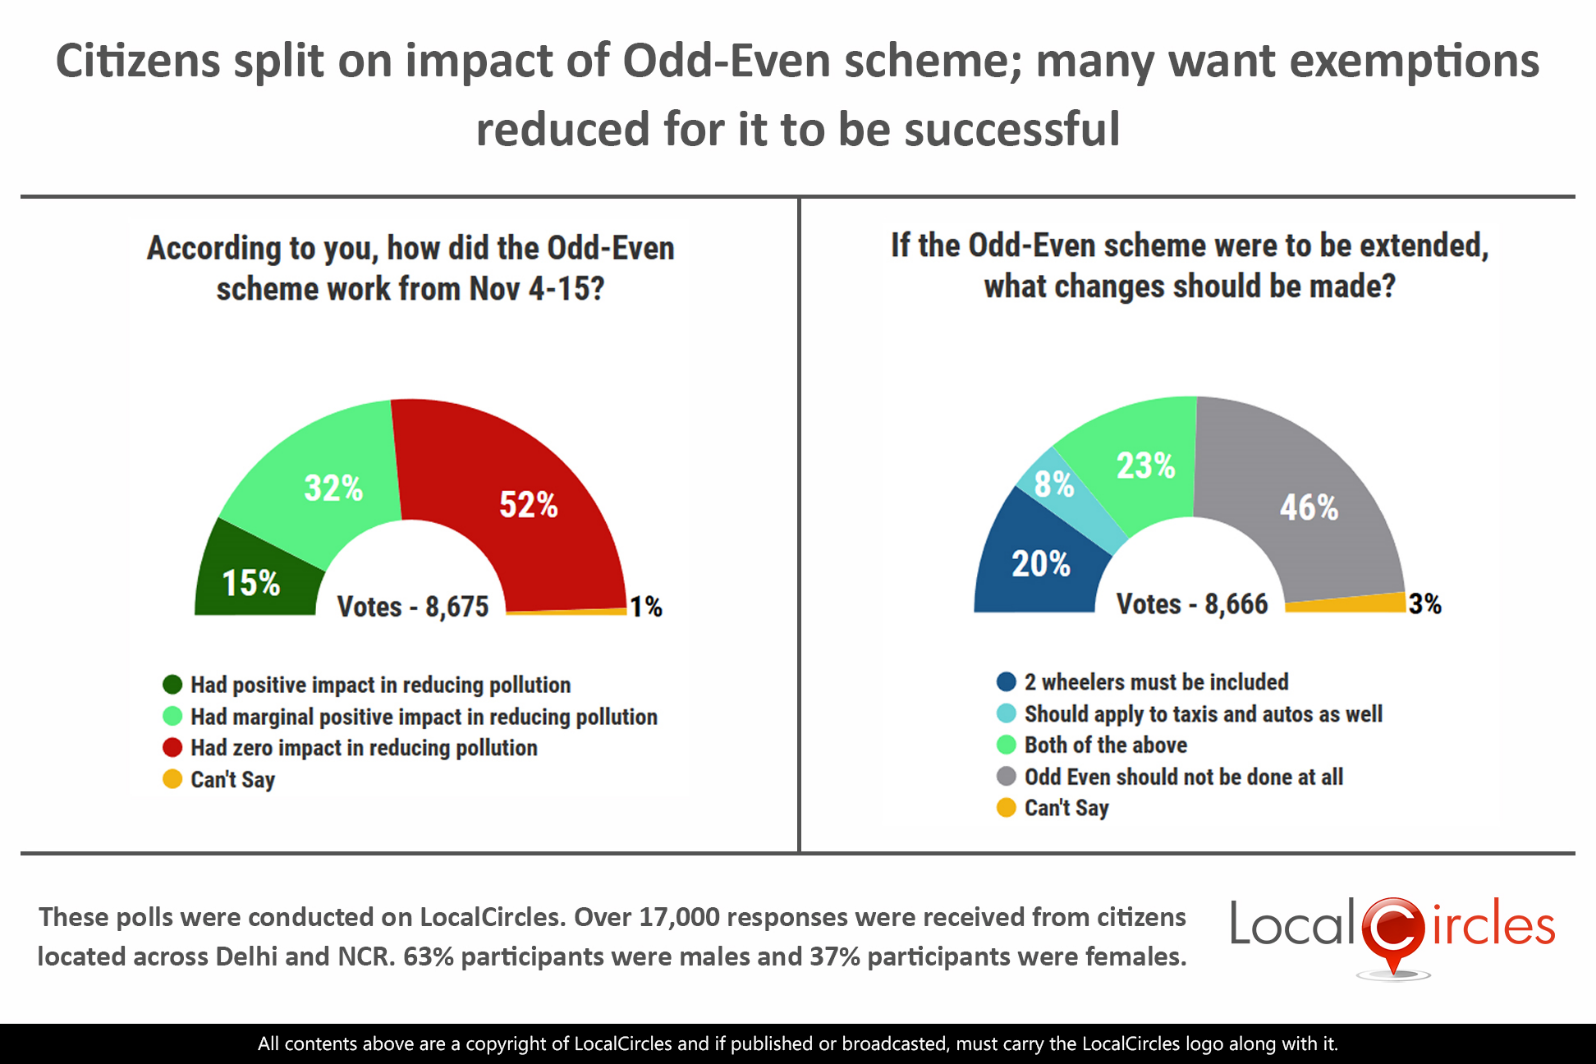 LocalCircles Poll - Citizens split on impact of Odd-Even scheme; many want exemptions reduced for it to be successful